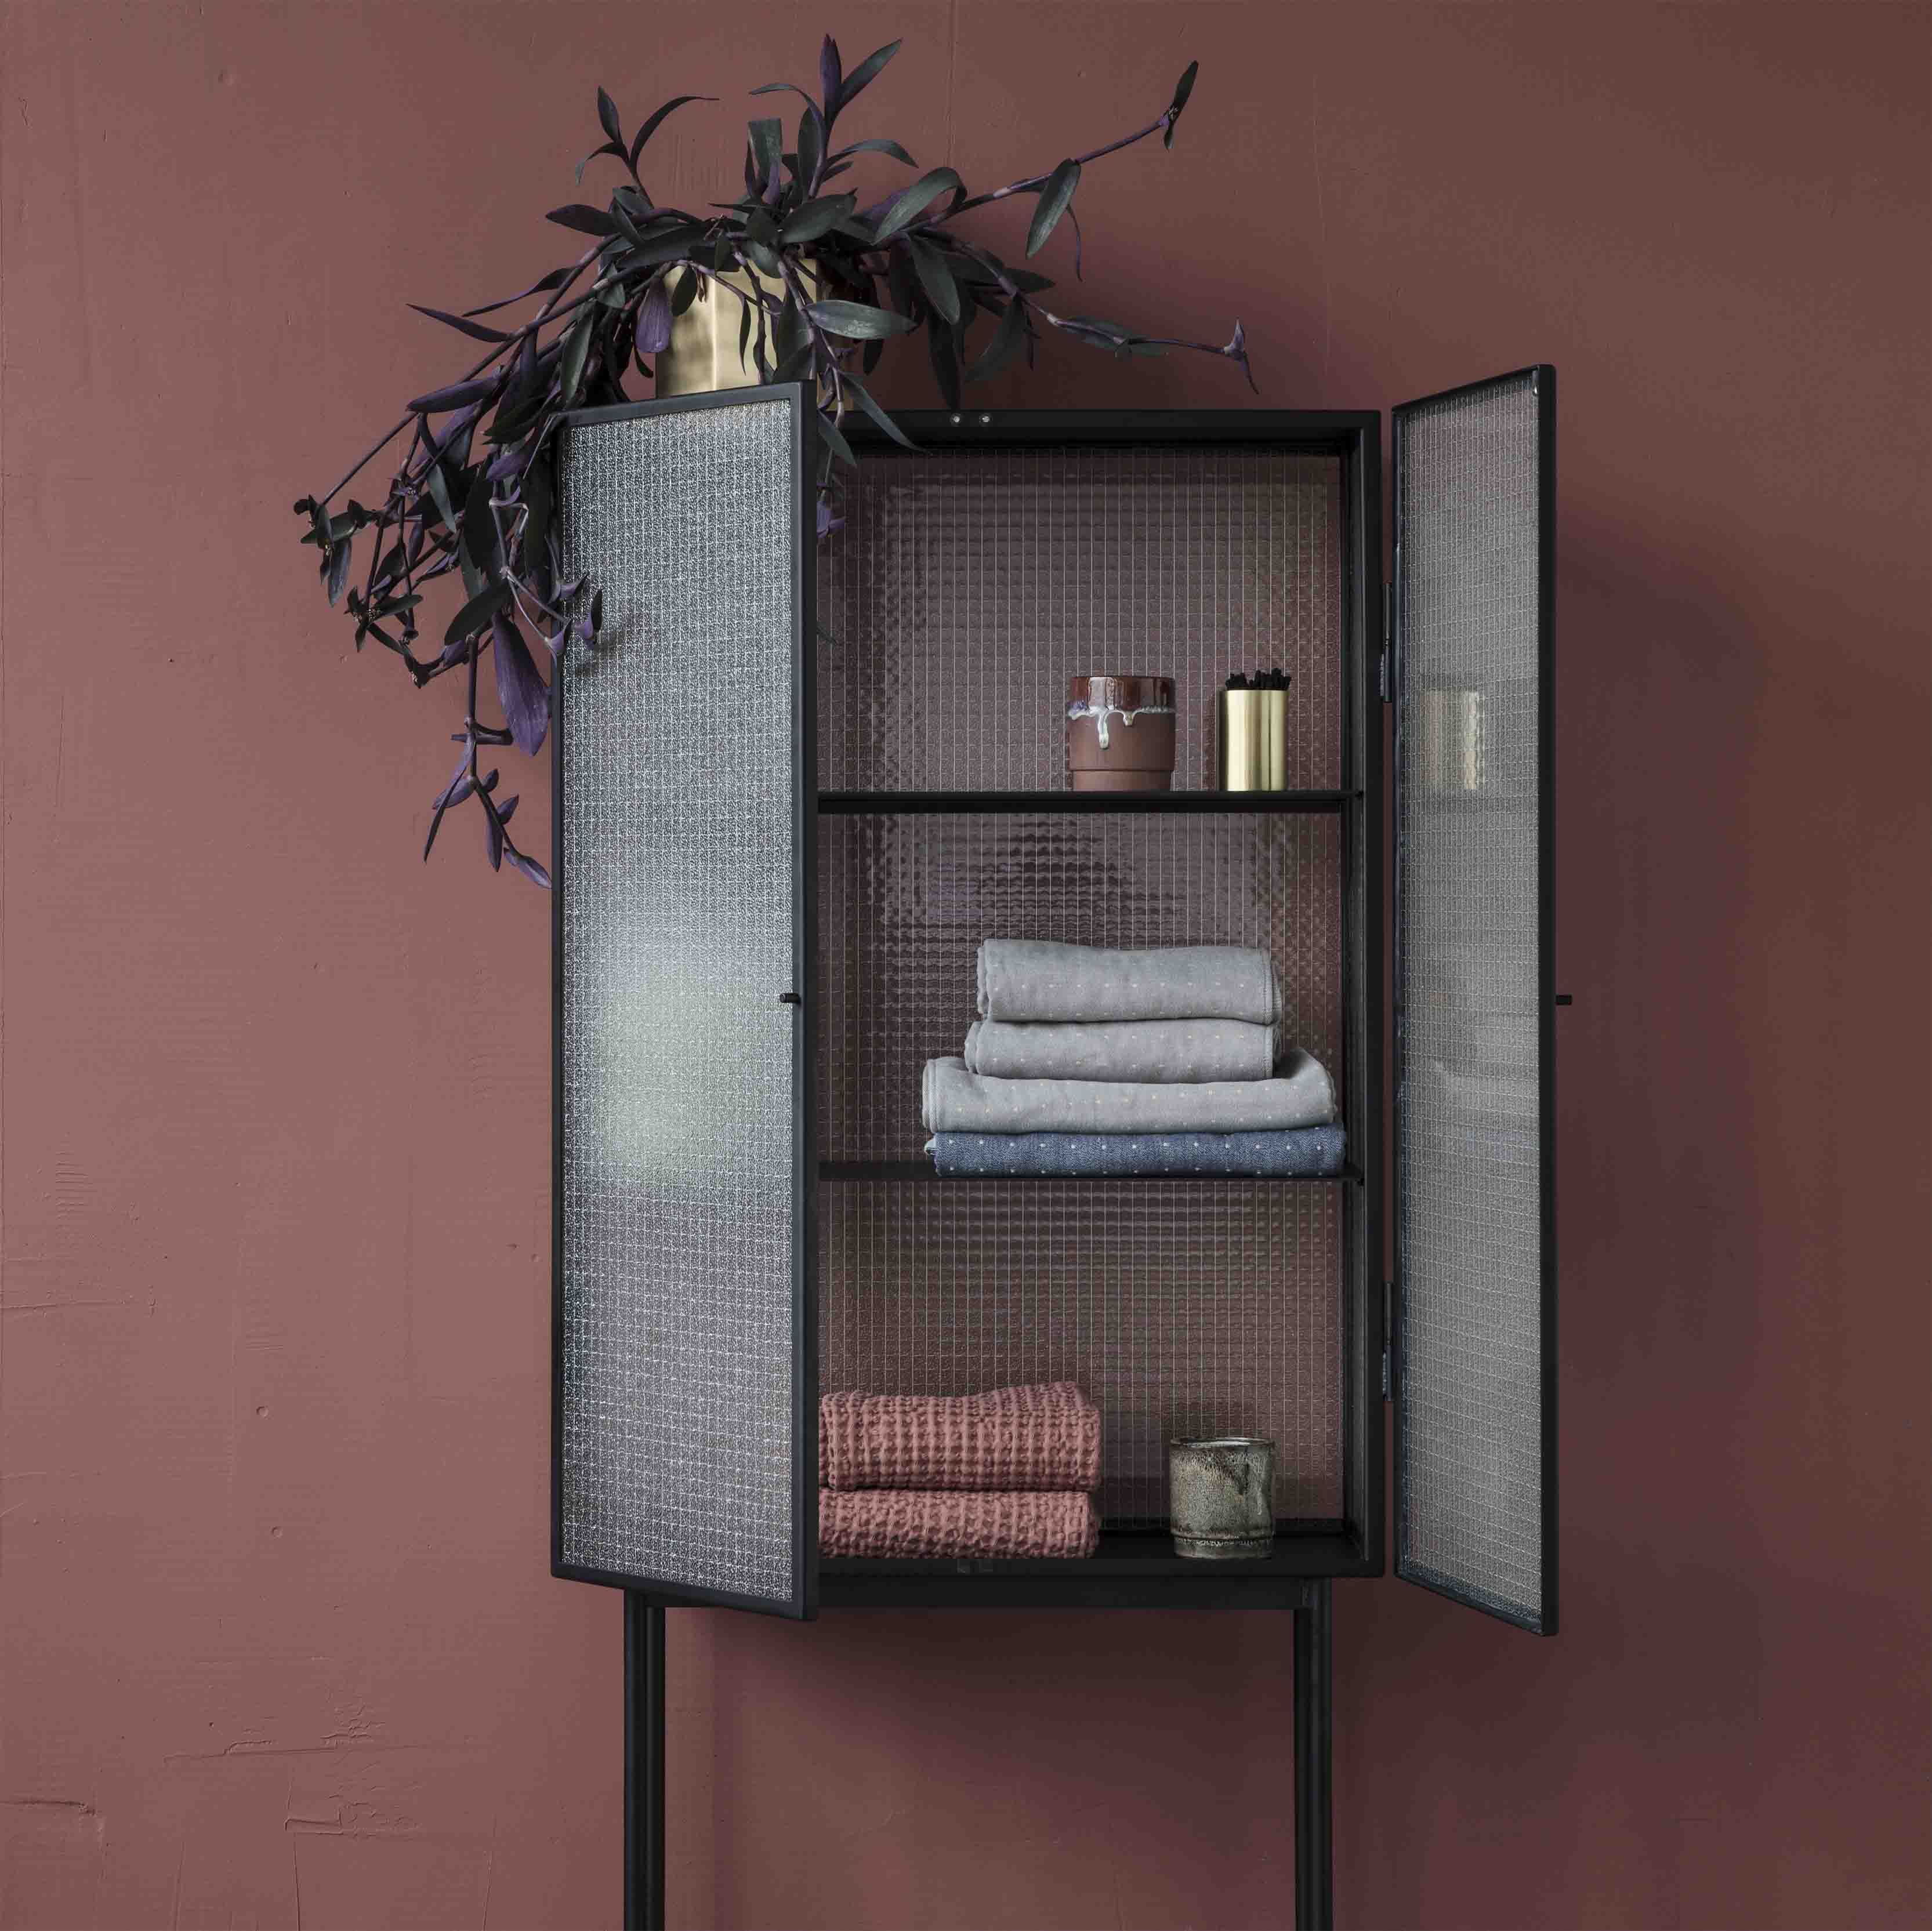 Opposites attract on this freestanding crafted